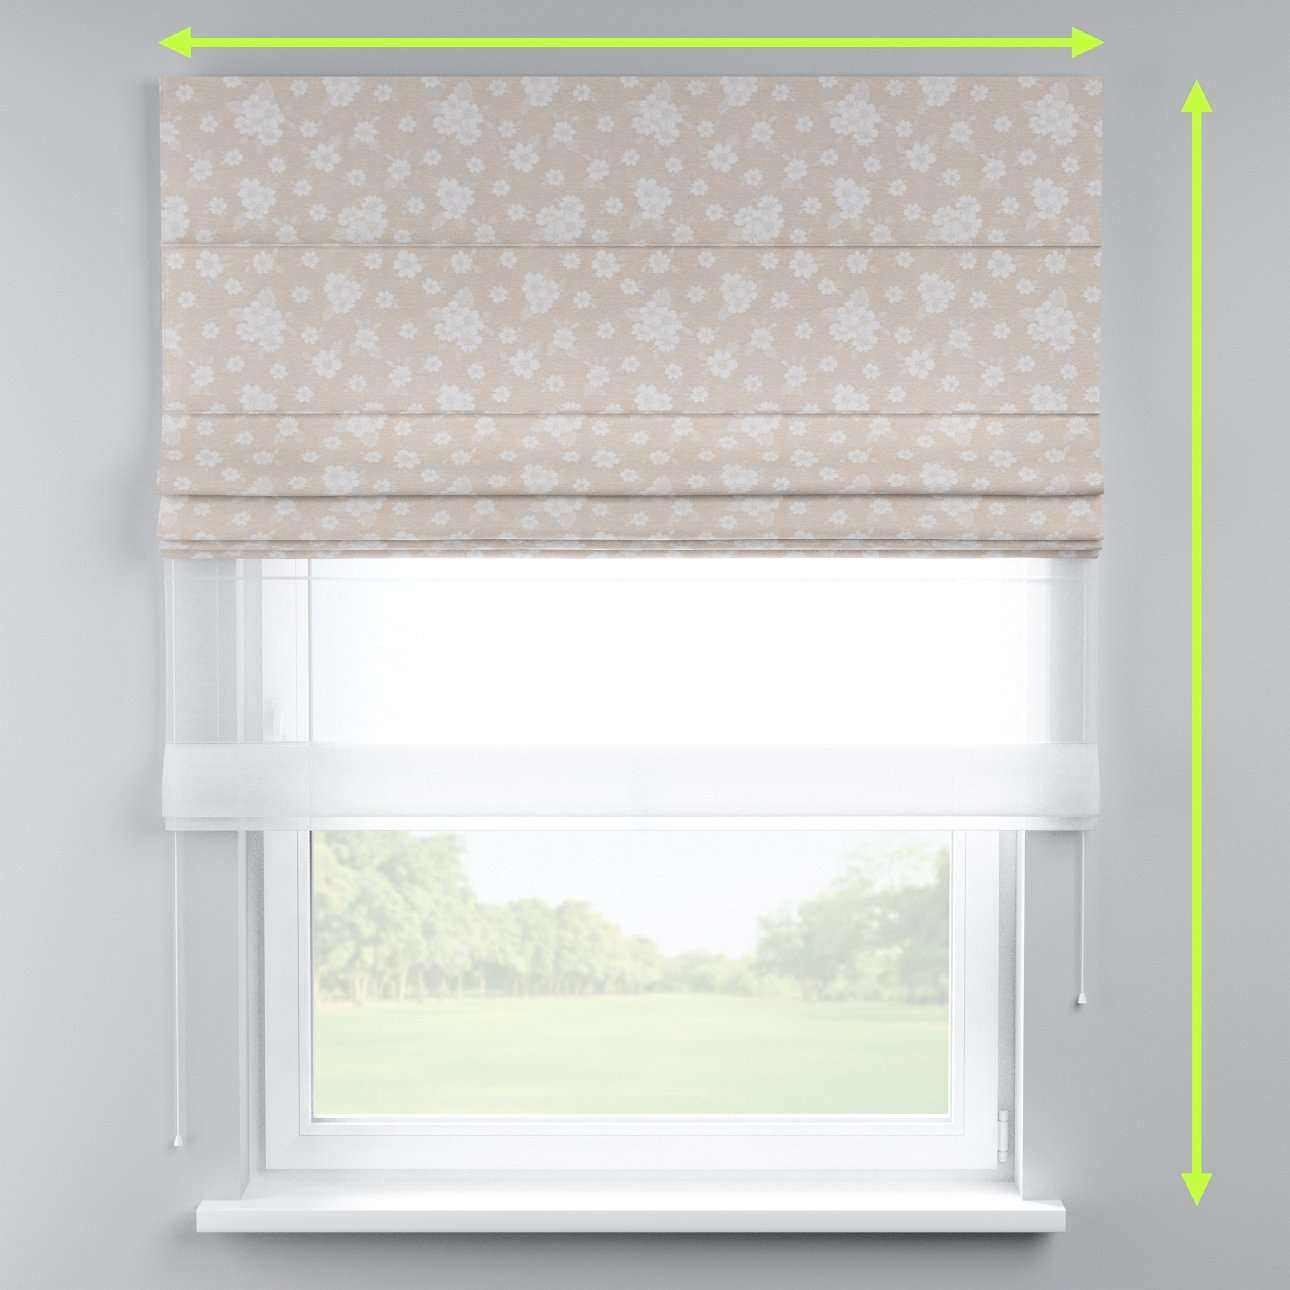 Voile and fabric roman blind (DUO II) in collection Rustica, fabric: 138-26